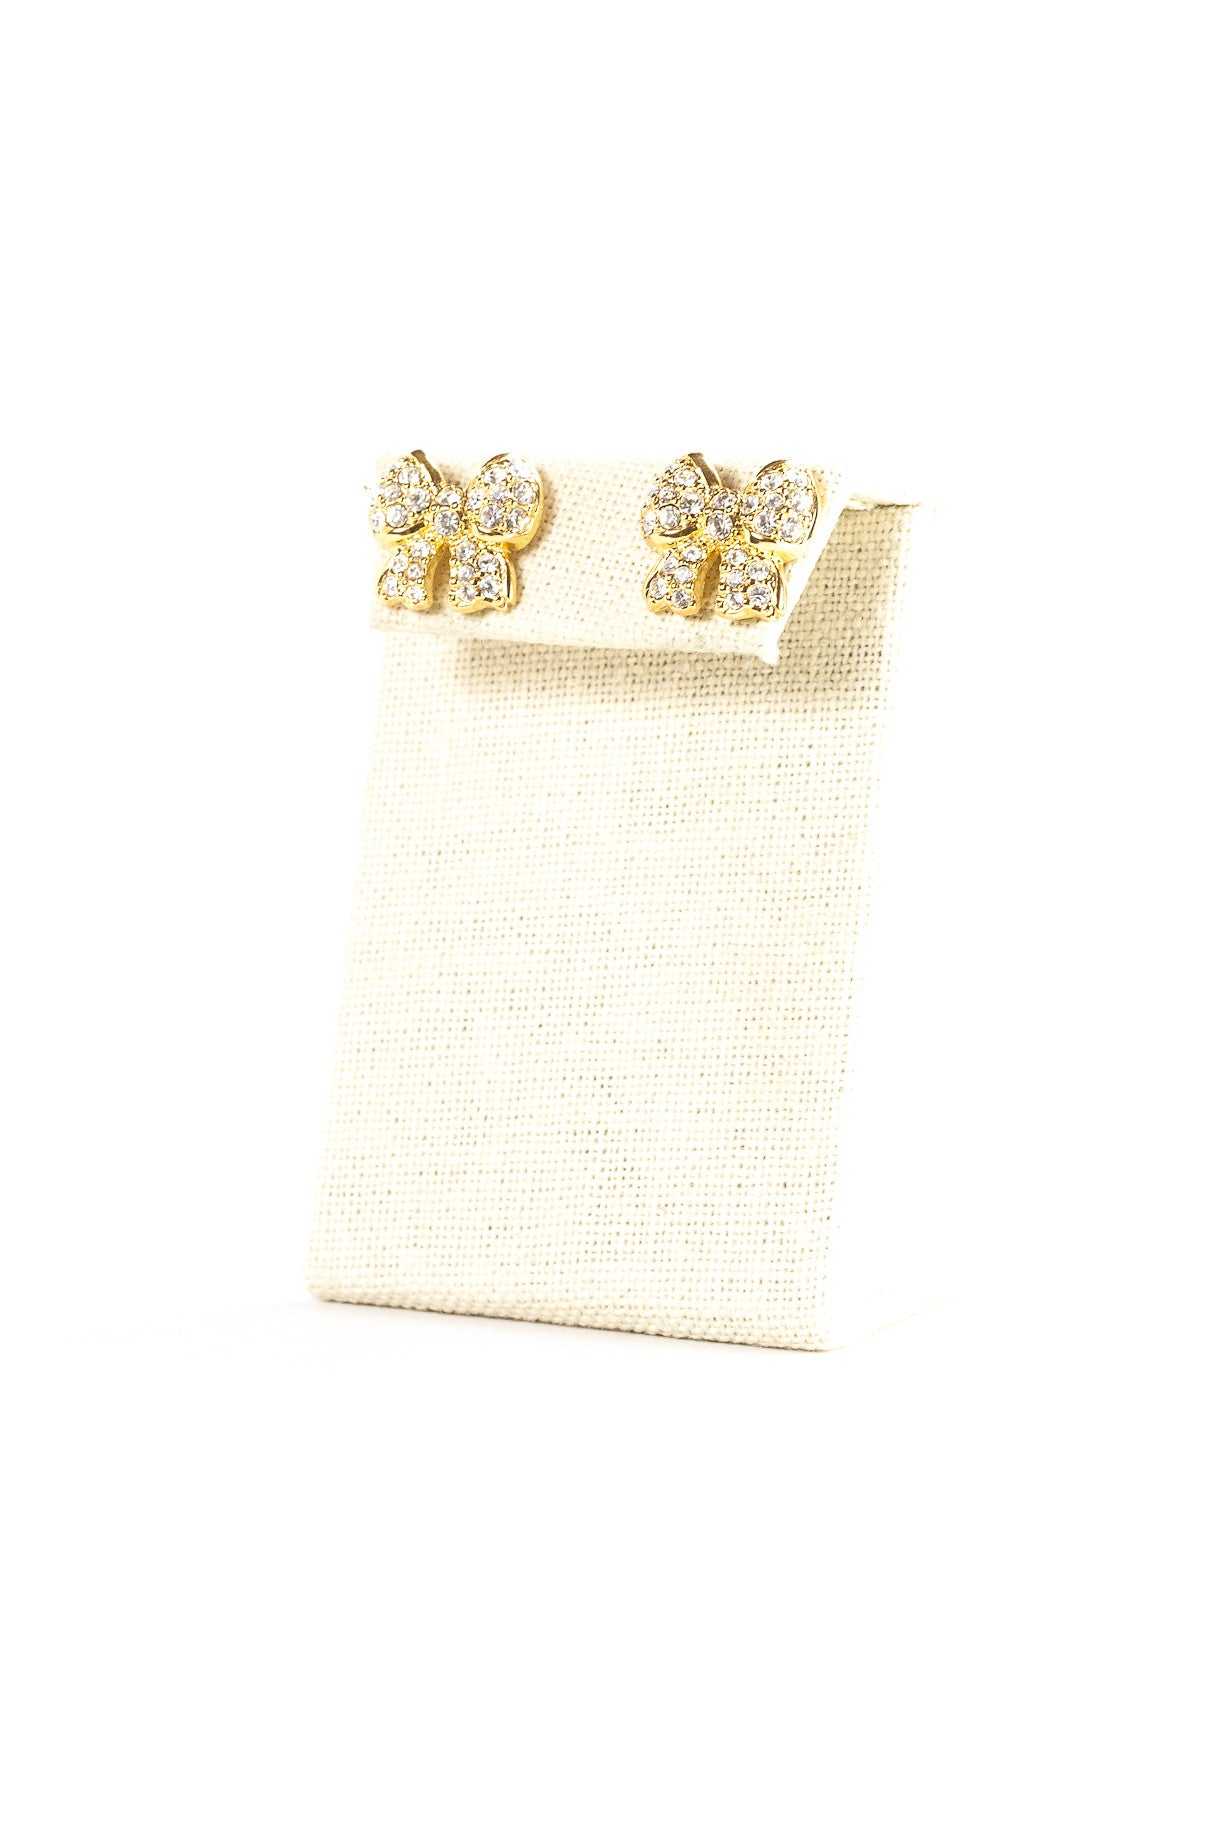 60's__Swarovski__Crystal Bow Earrings